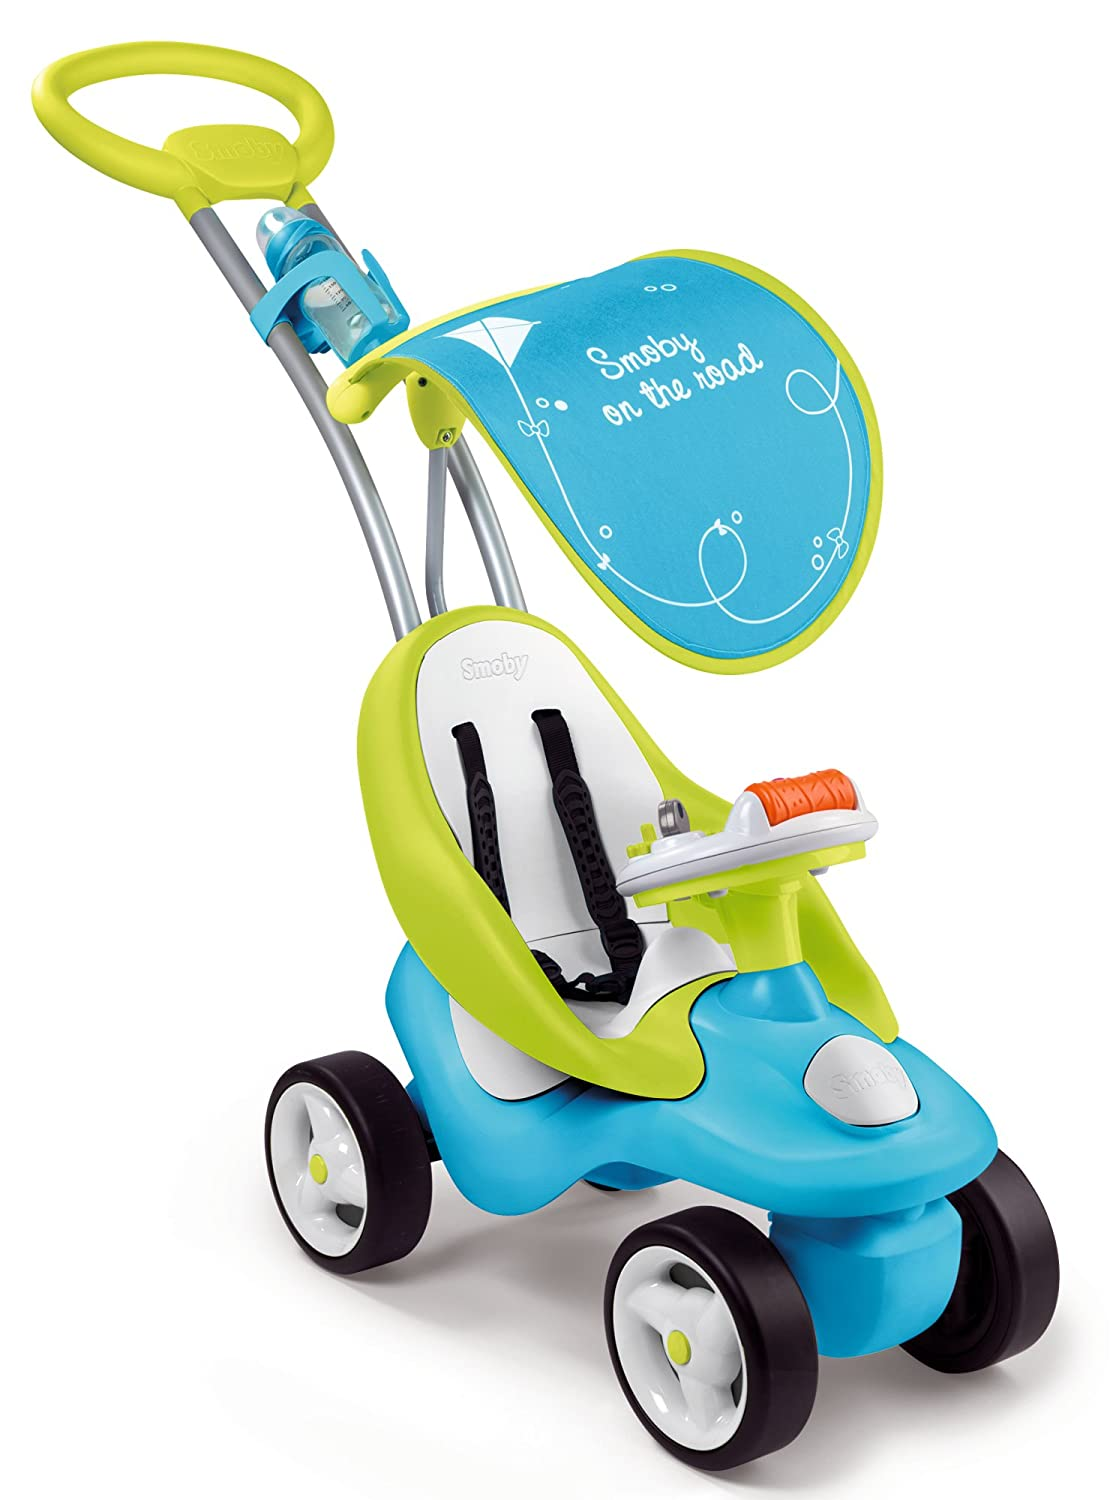 Smoby 720101 - Bubble Go, blau 7600720101